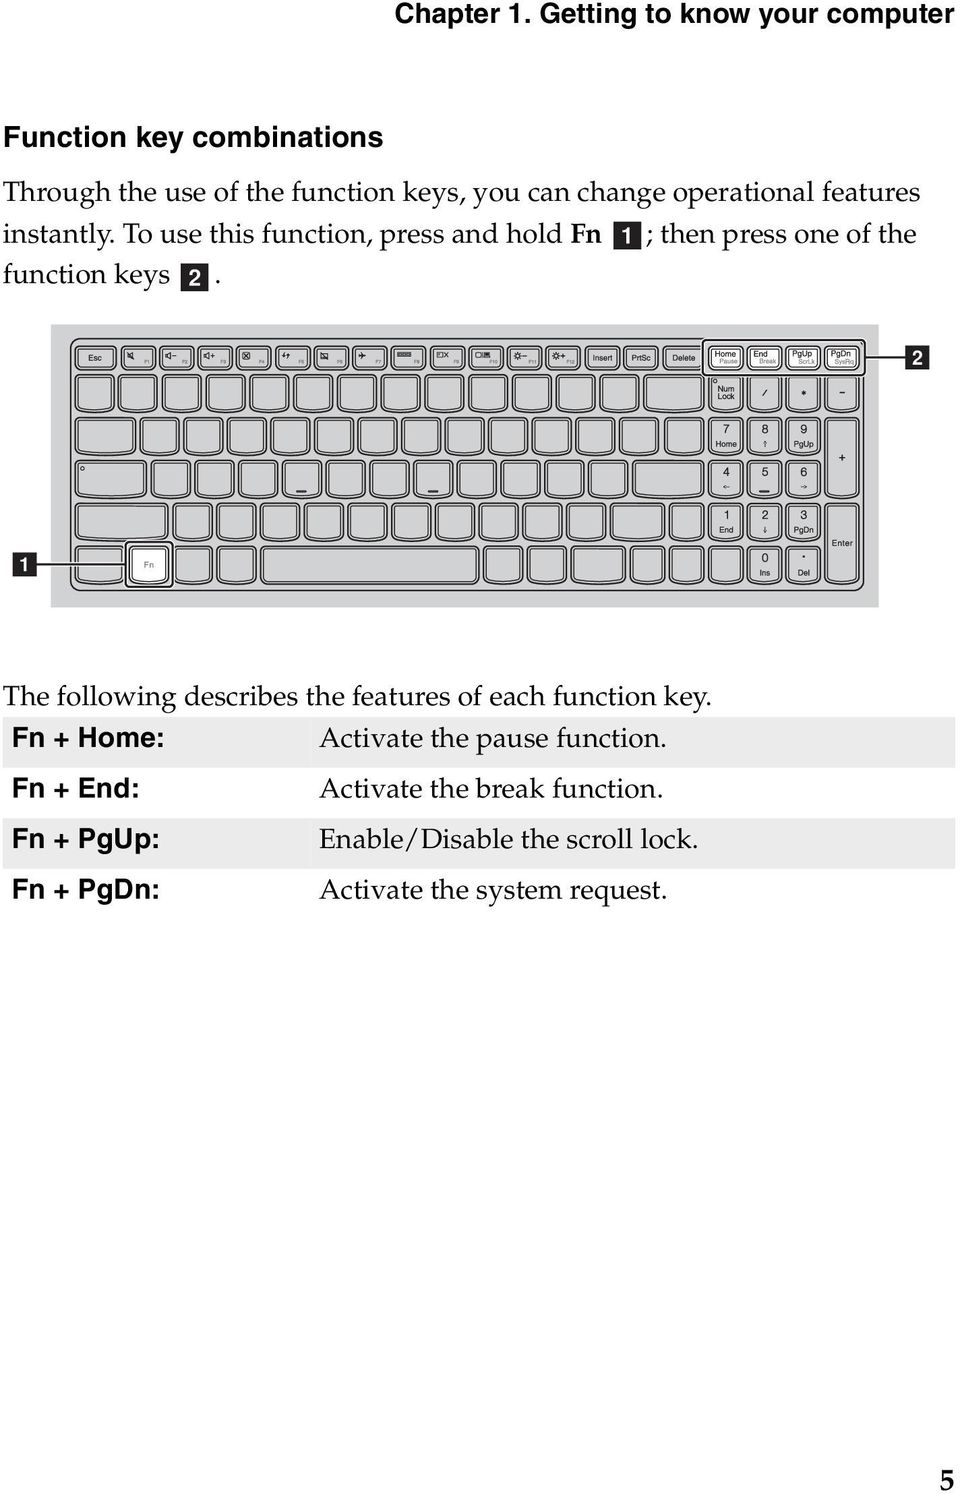 operational features instantly. To use this function, press and hold Fn a; then press one of the function keys b.